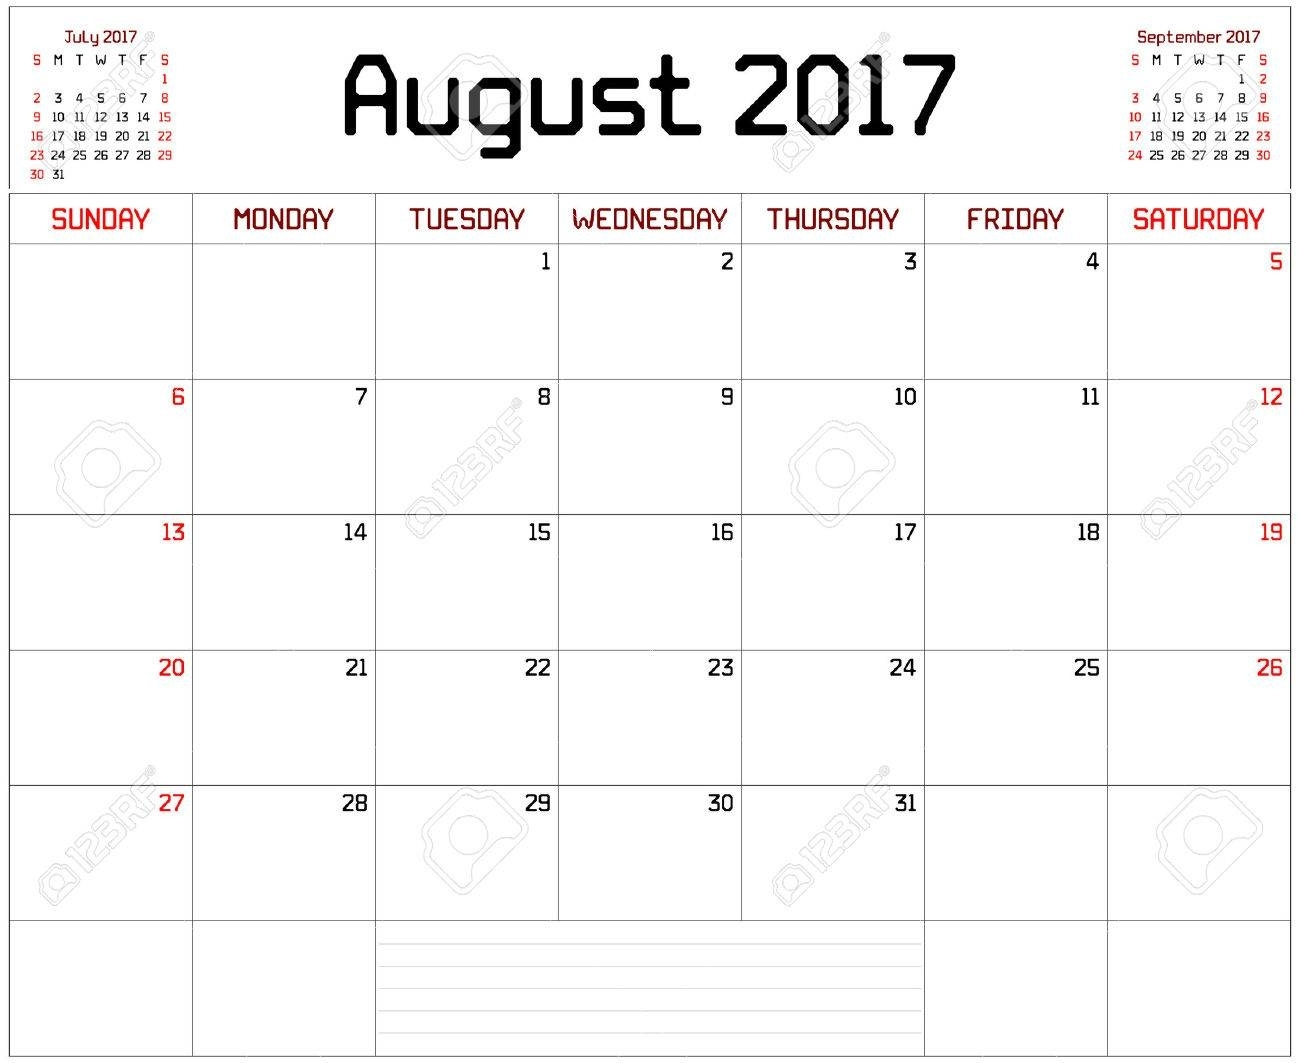 Year 2017 August Planner - A Monthly Planner Calendar For August intended for Month Of August Calendar With Lines